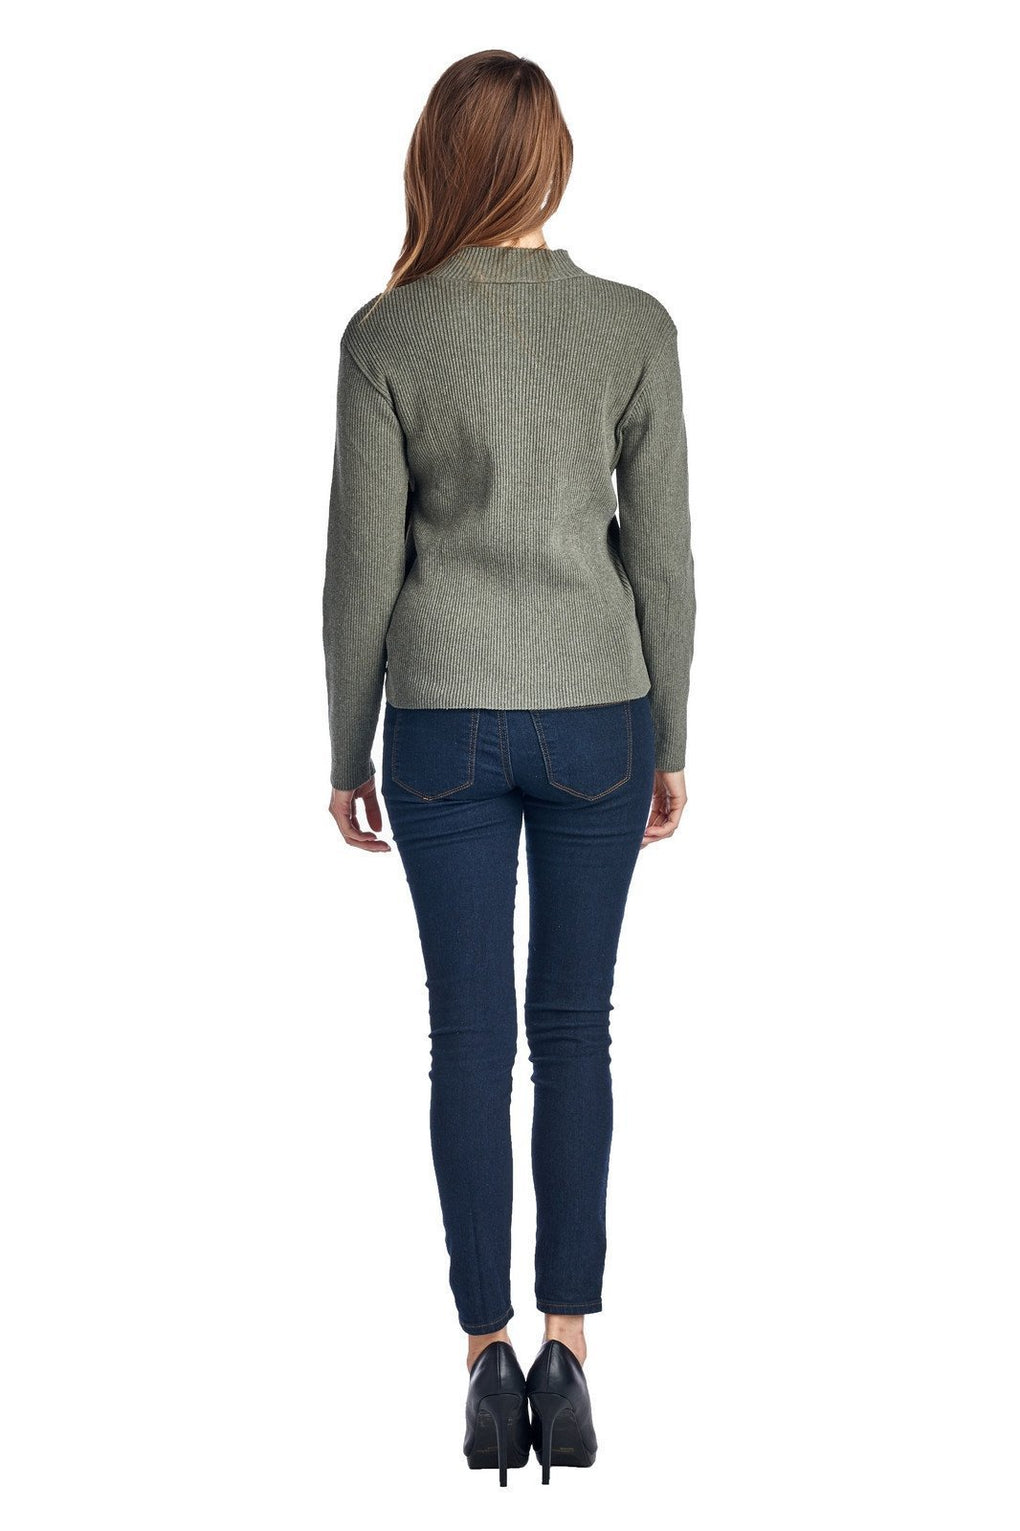 Women's High Neck Rib Knit Sweater - Danish Fashion & Living Online Store SALE